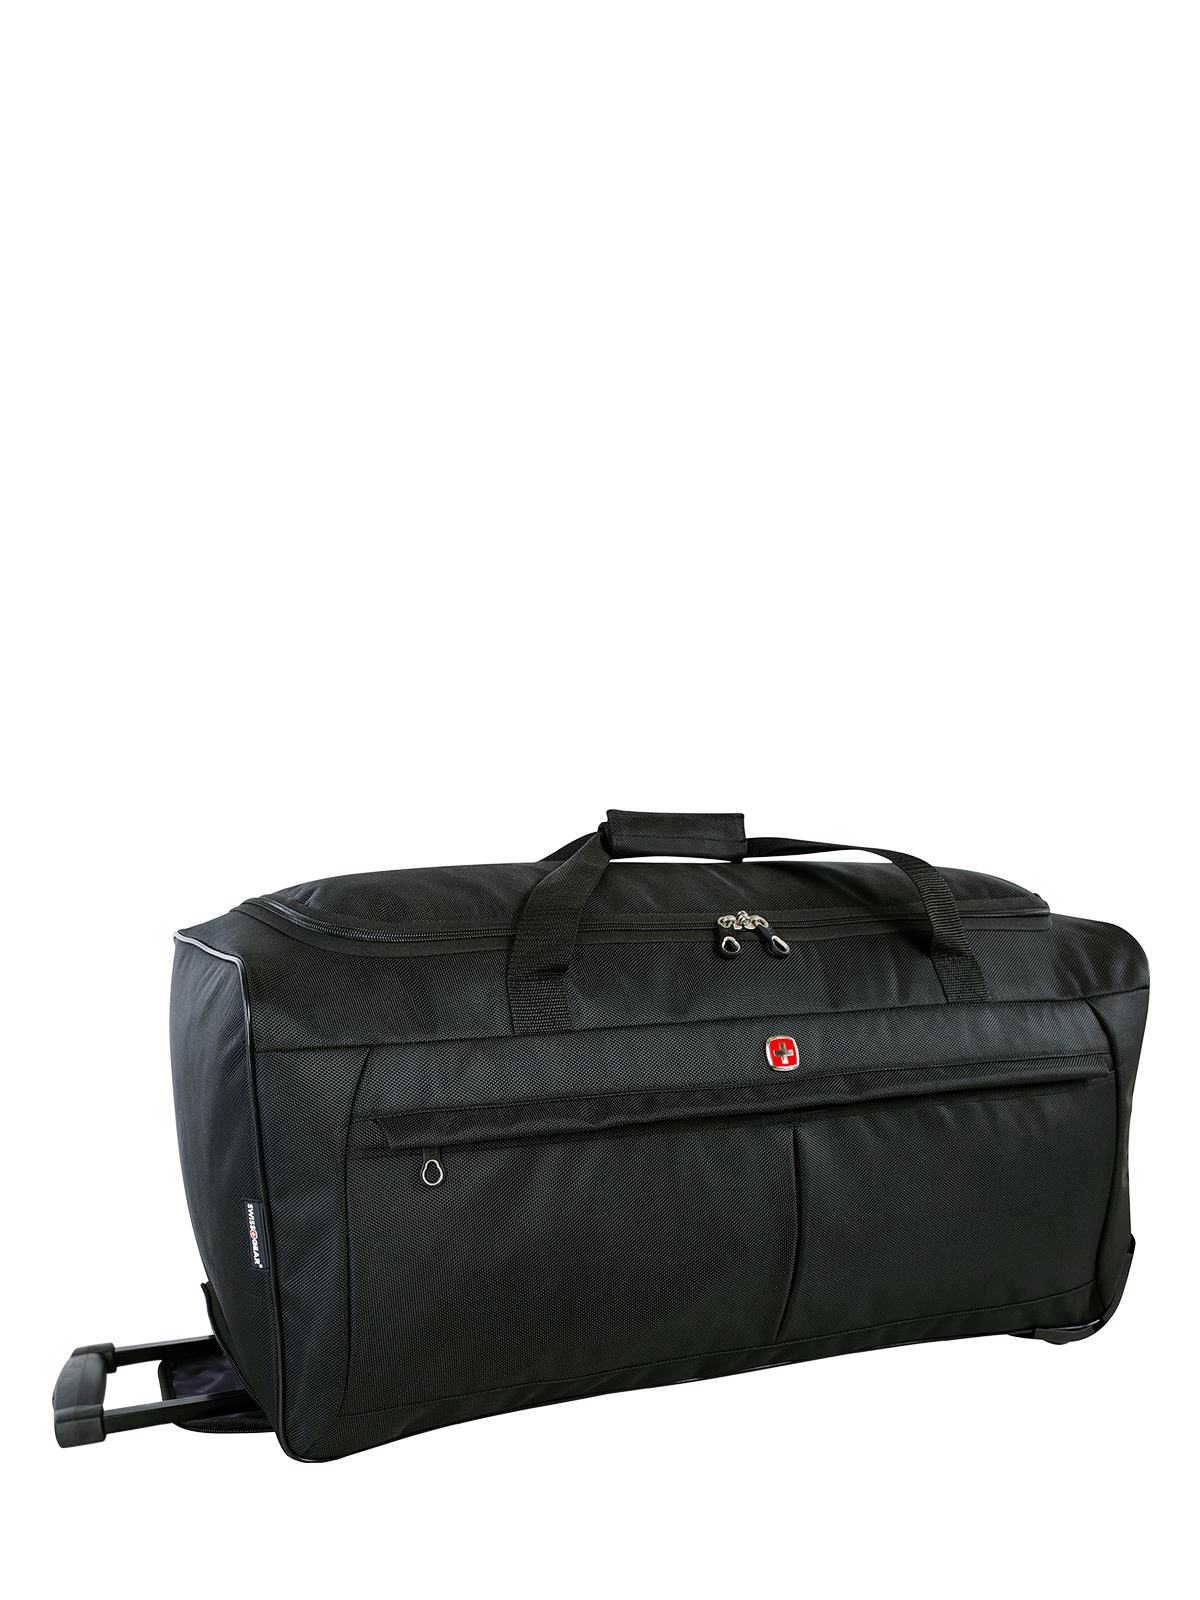 d0129f350 Luggage & travel suitcases for sale | Holiday